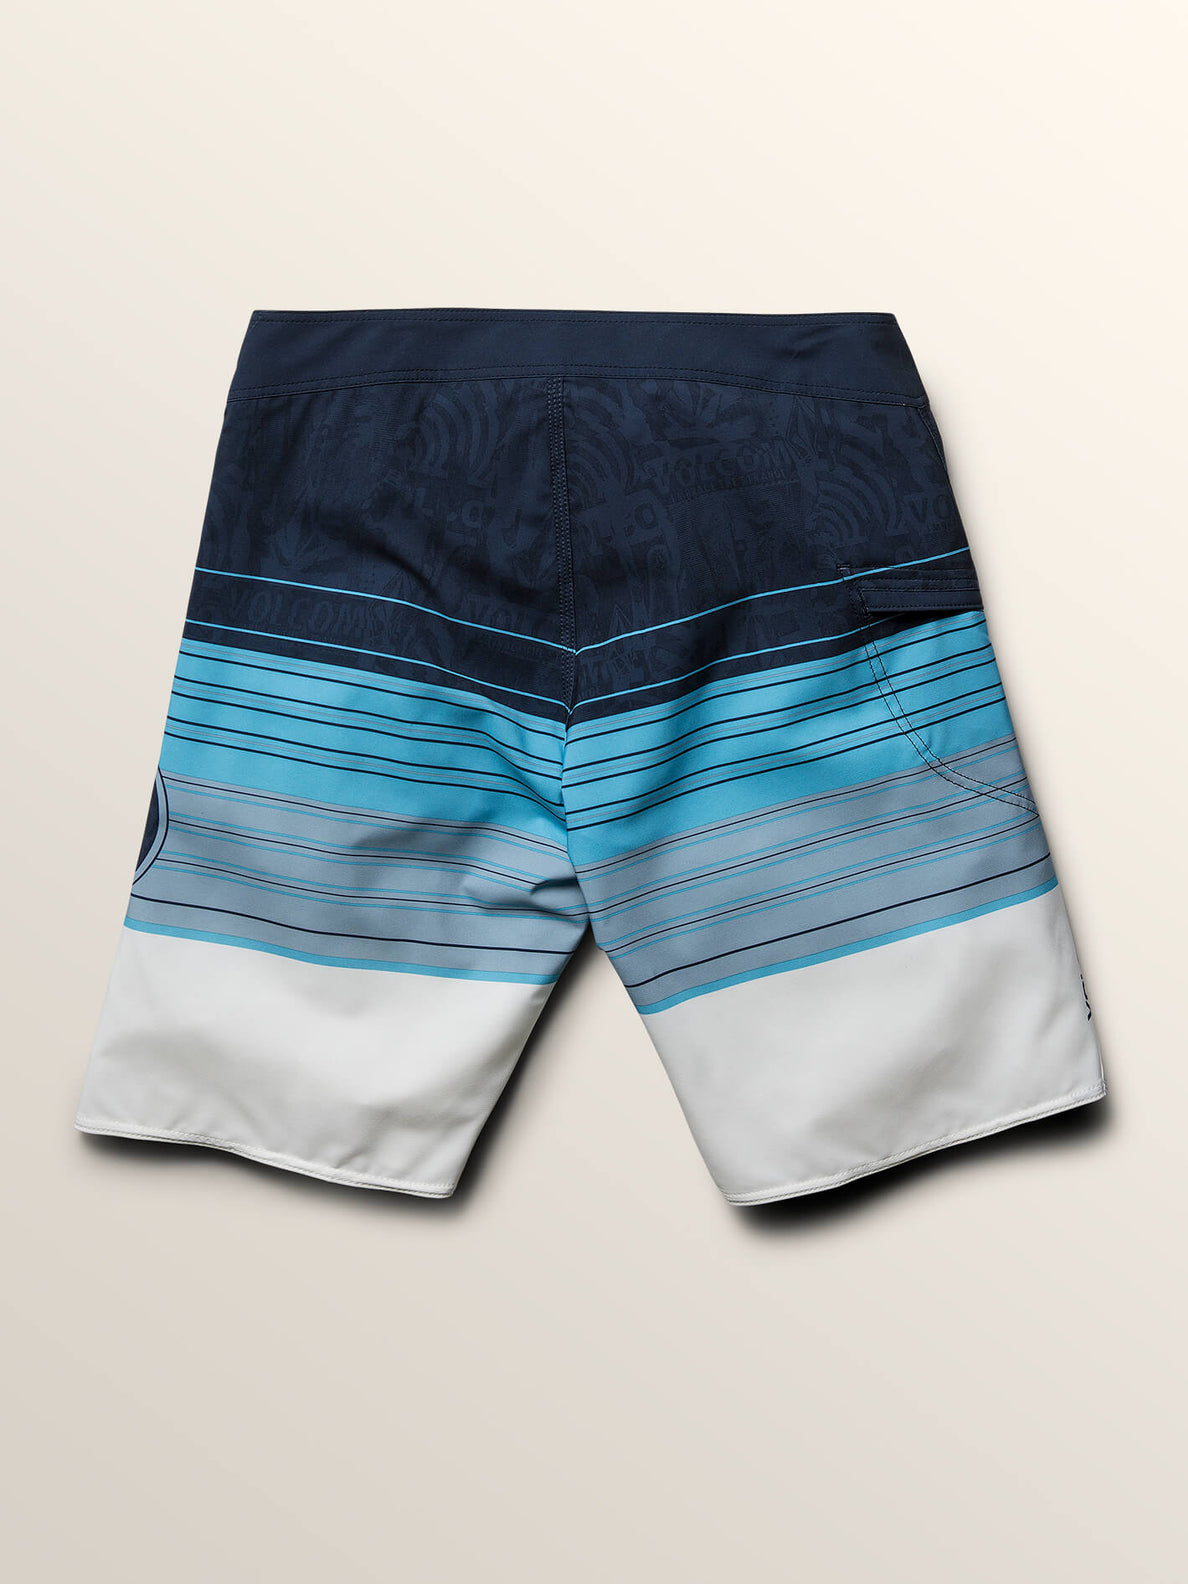 Lido Liney Mod Boardshorts In Melindigo, Fourth Alternate View